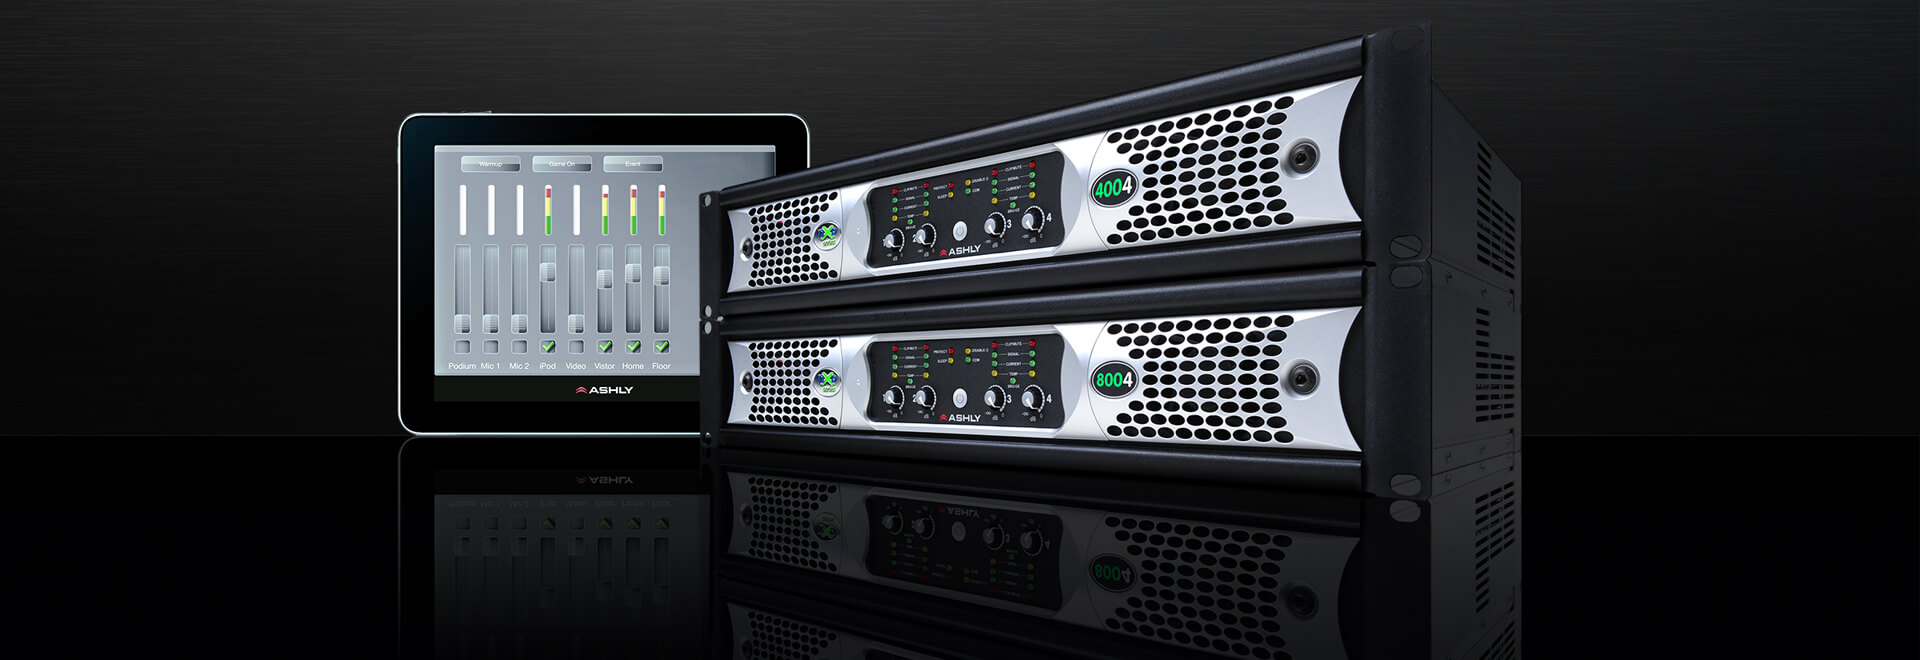 Ashly Audio World Leader In Signal Processing Power Amplification Amplifiers Nx Amps Adapt